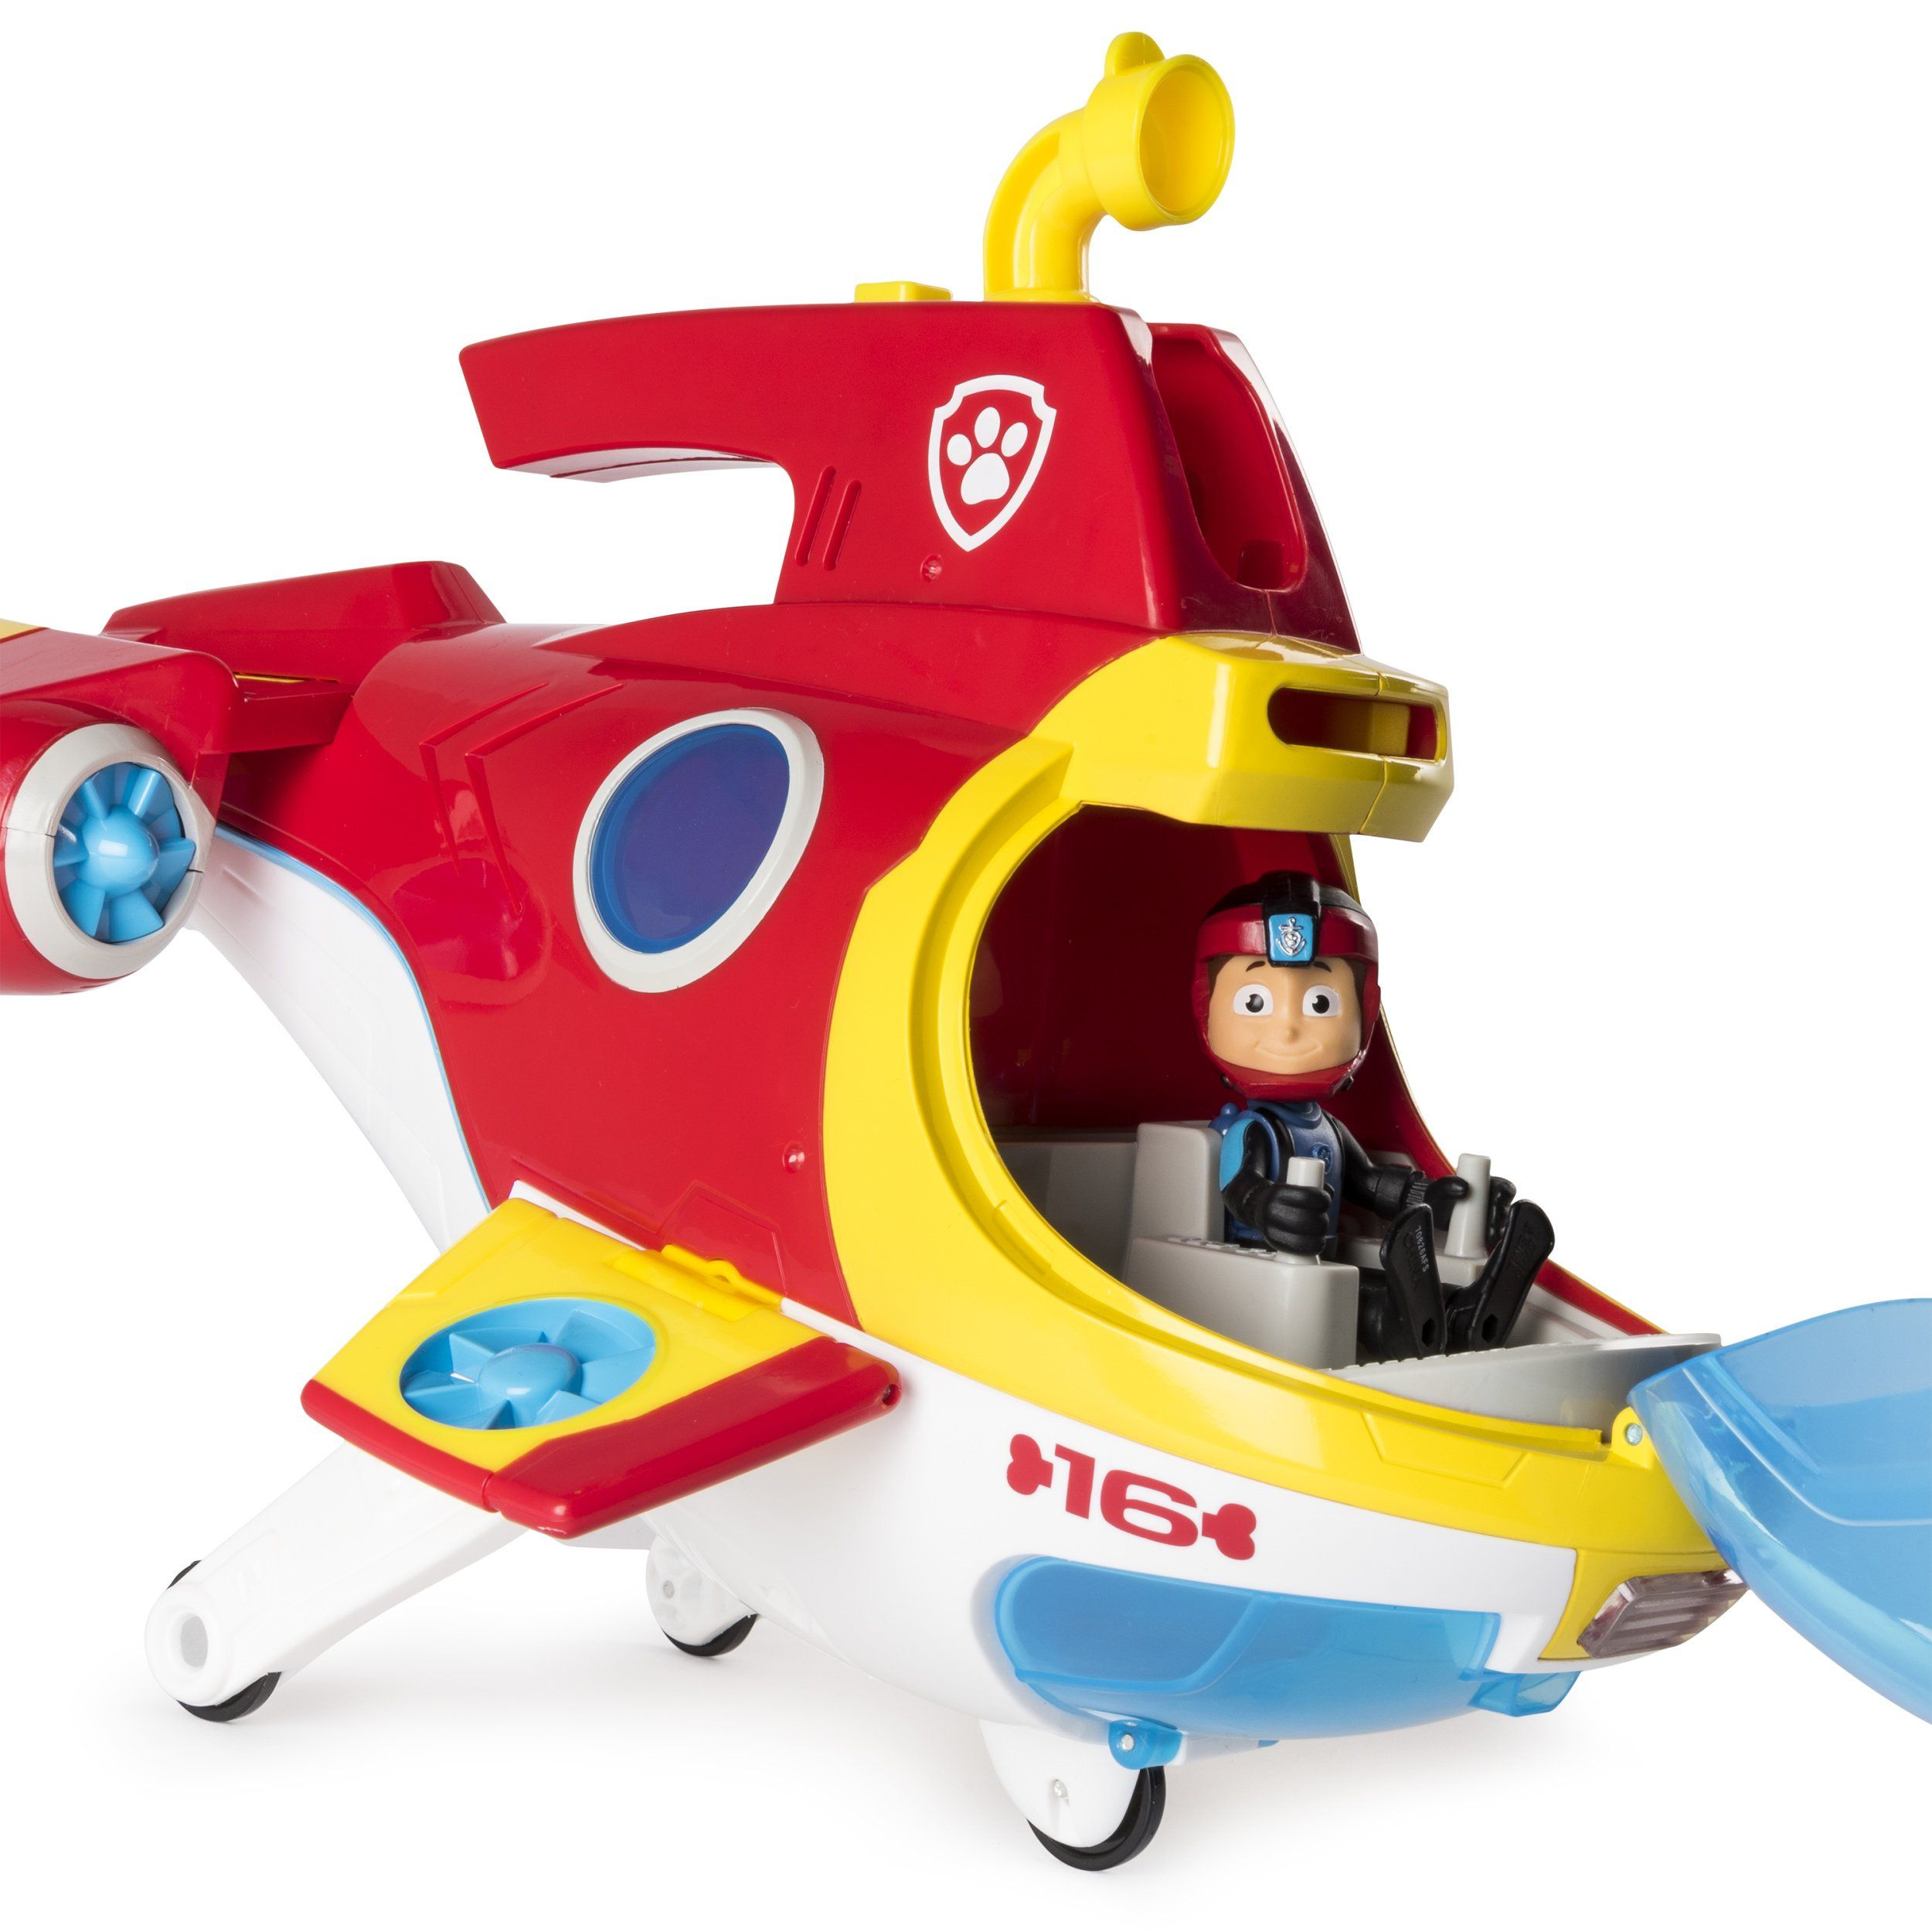 Paw Patrol â Sub Patroller Transforming Vehicle With Lights Sounds And Launcher Click Image To Review More Details It Is Paw Patrol Toys Paw Patrol Toys